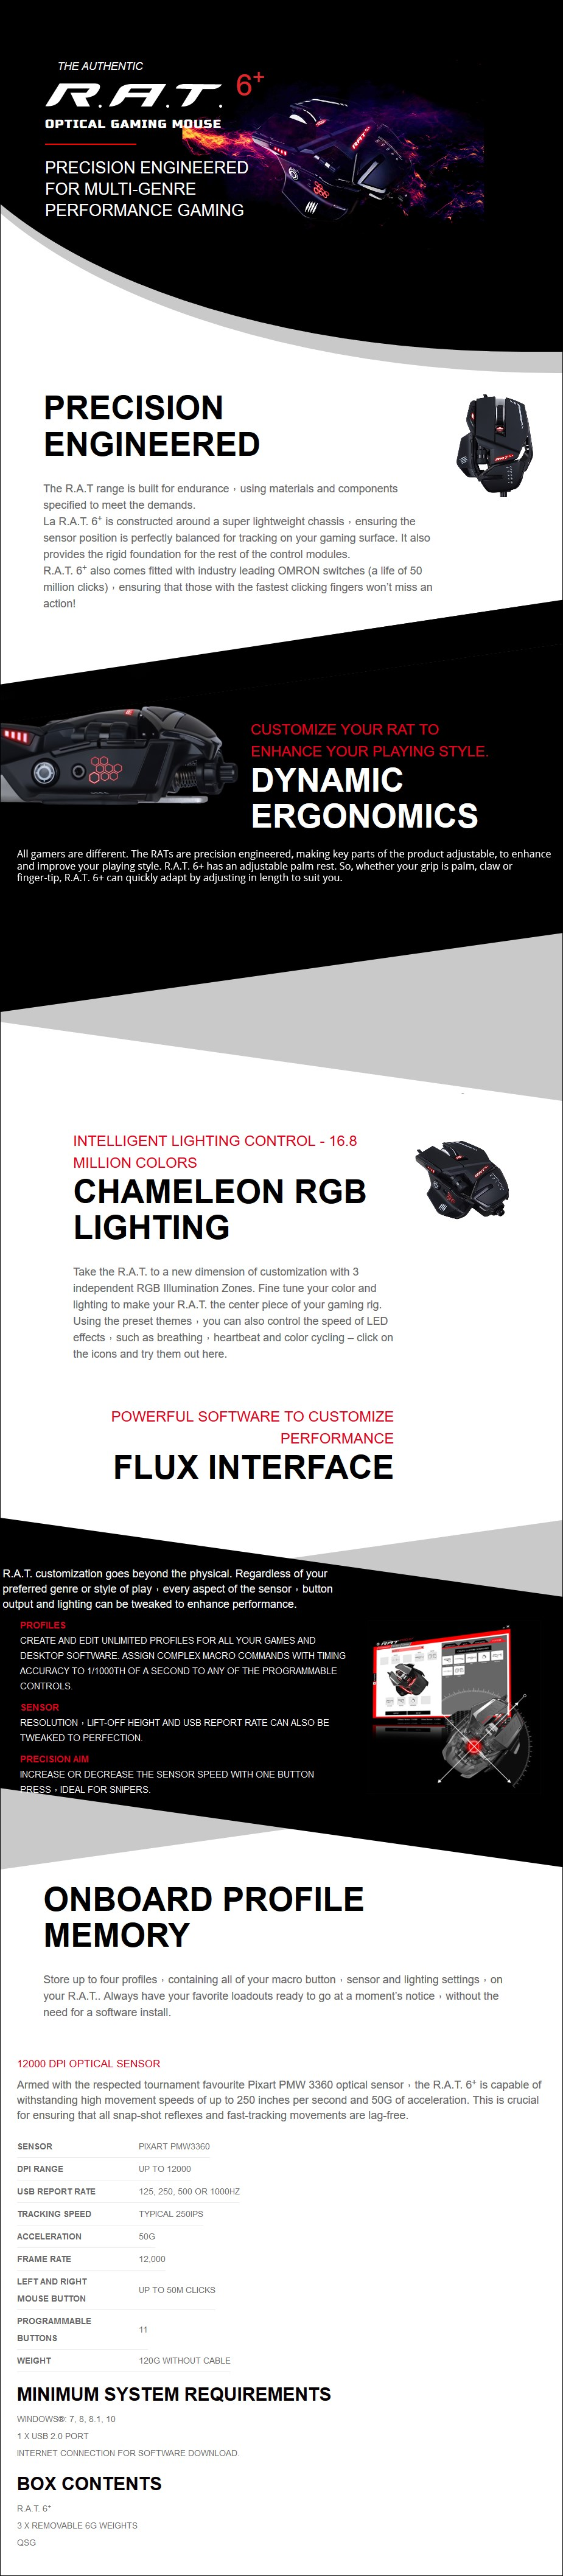 A large marketing image providing additional information about the product Mad Catz R.A.T. 6+ Gaming Mouse Black - Additional alt info not provided